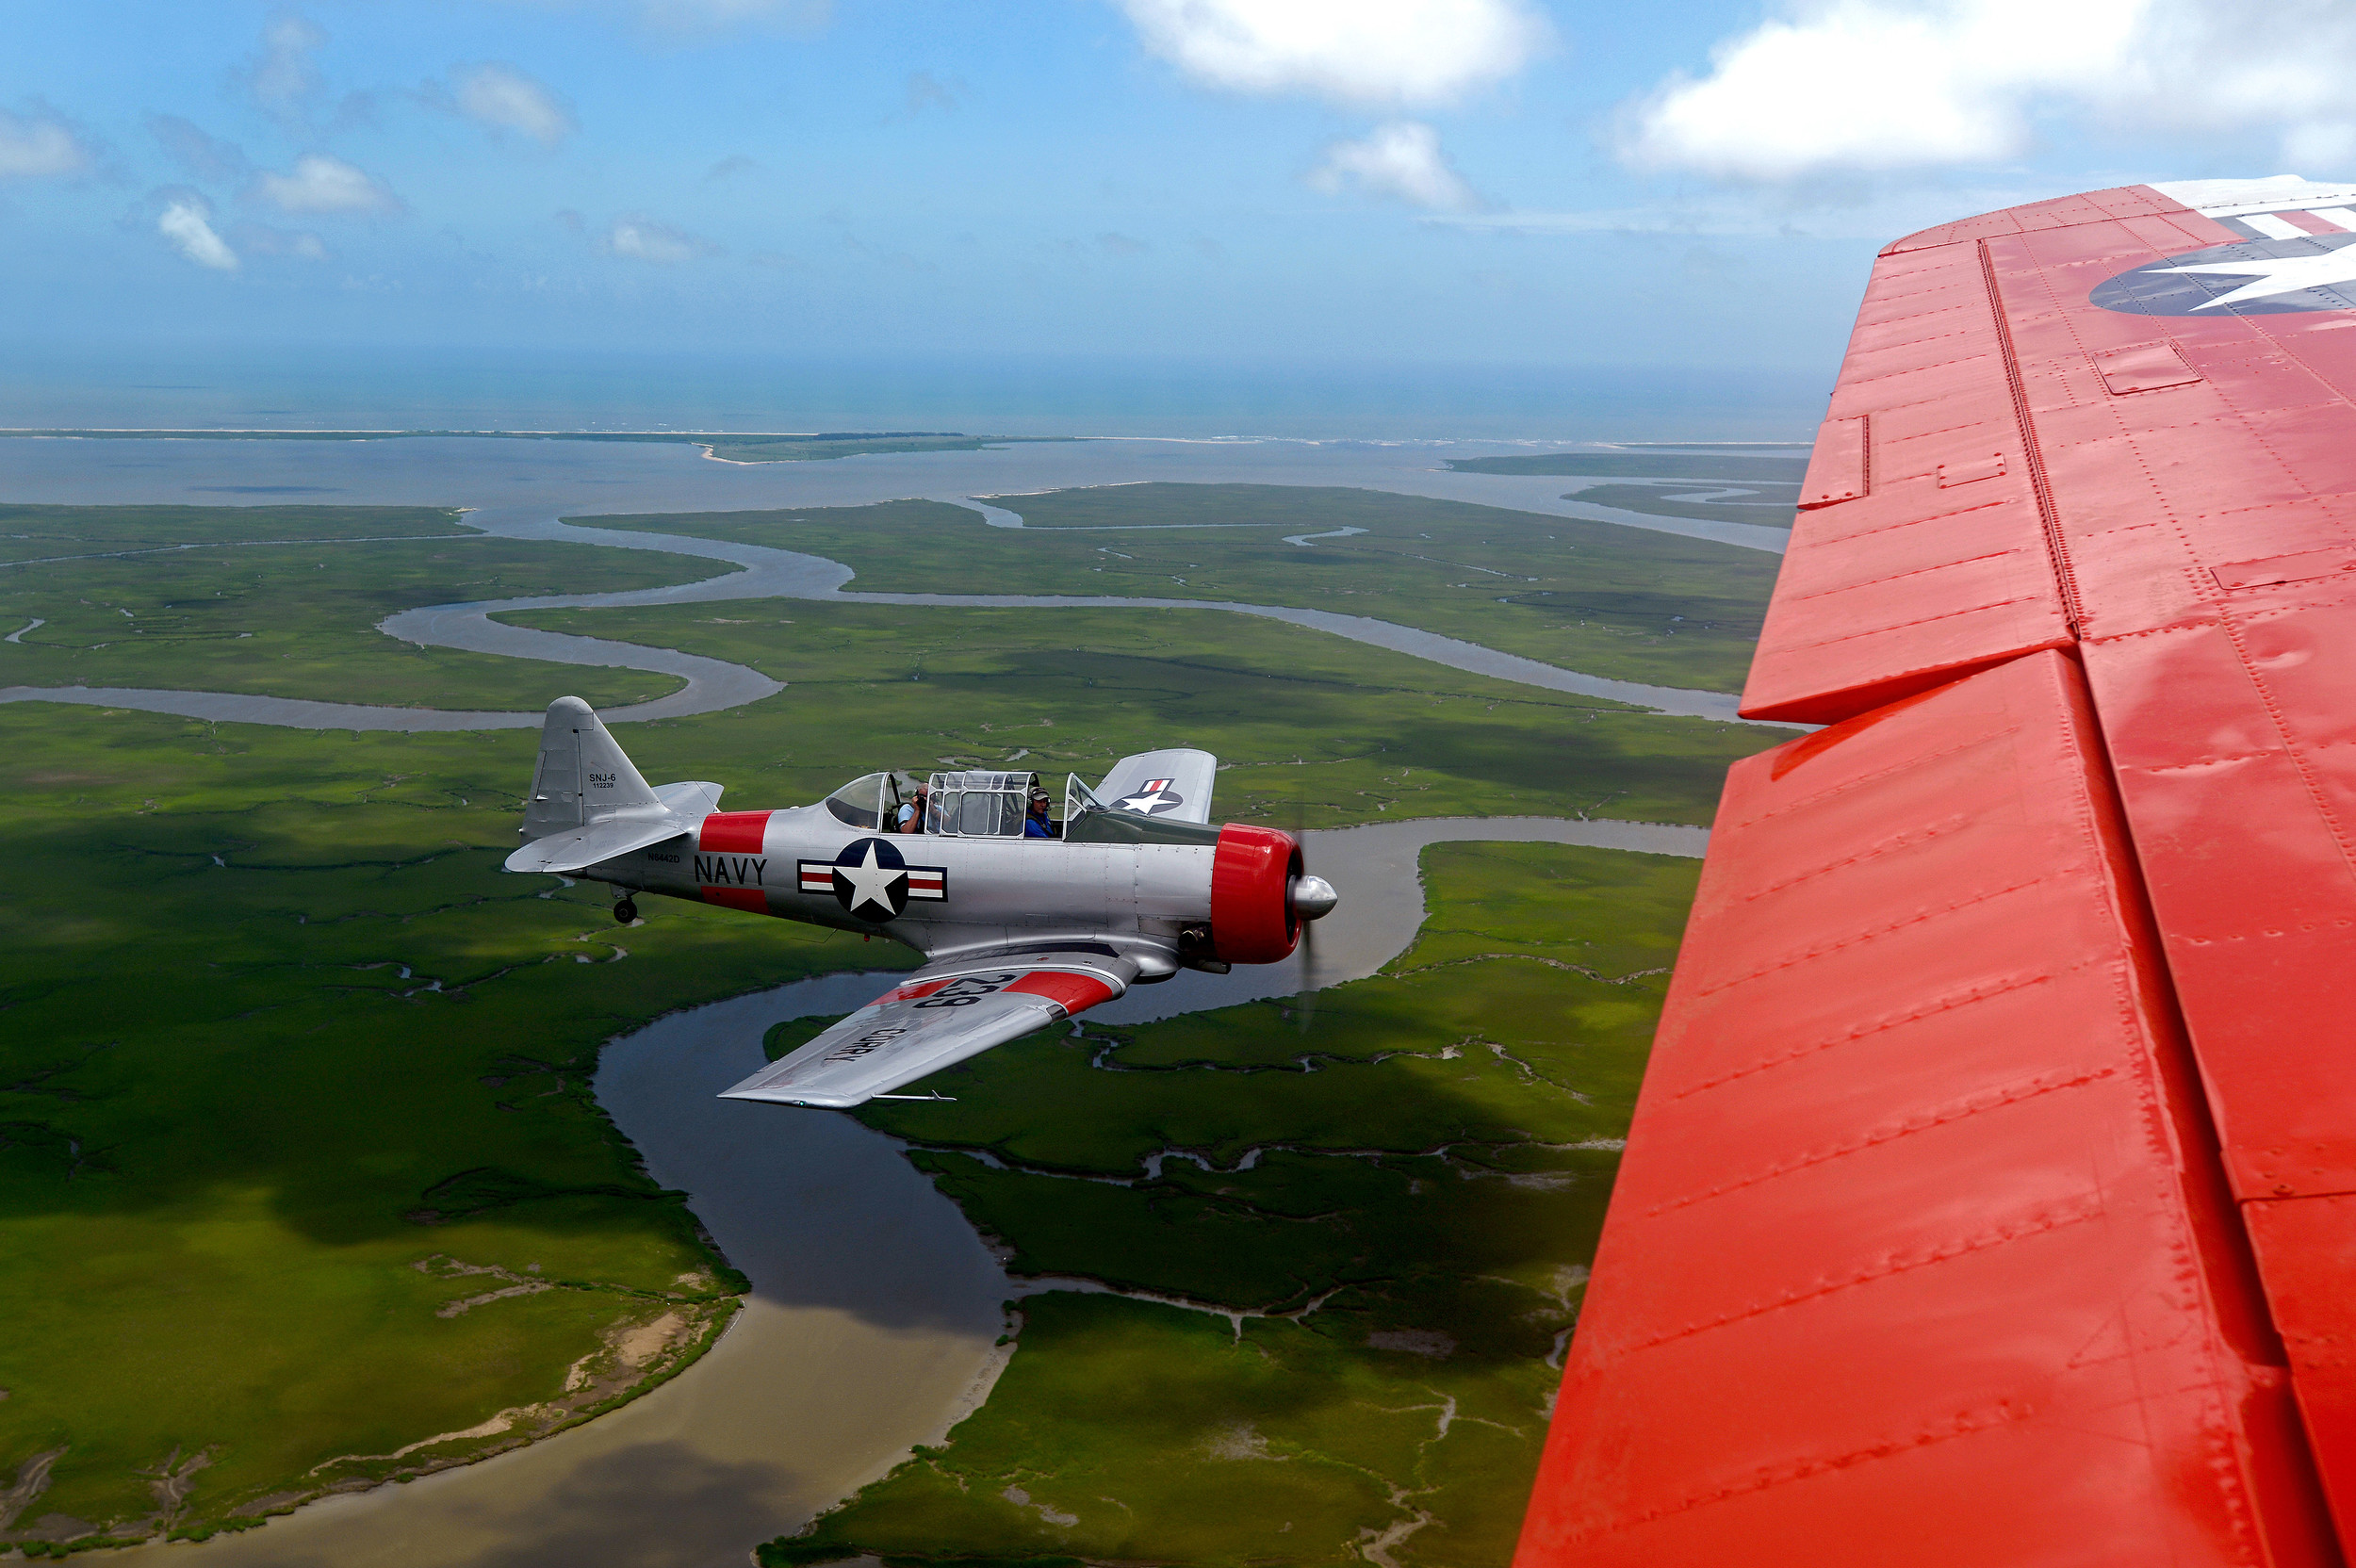 A T-6 Texan flies beside a retired Navy C-45 during the Fourth of July's Salute from the Shore air parade on the coast of South Carolina on July 4, 2013.